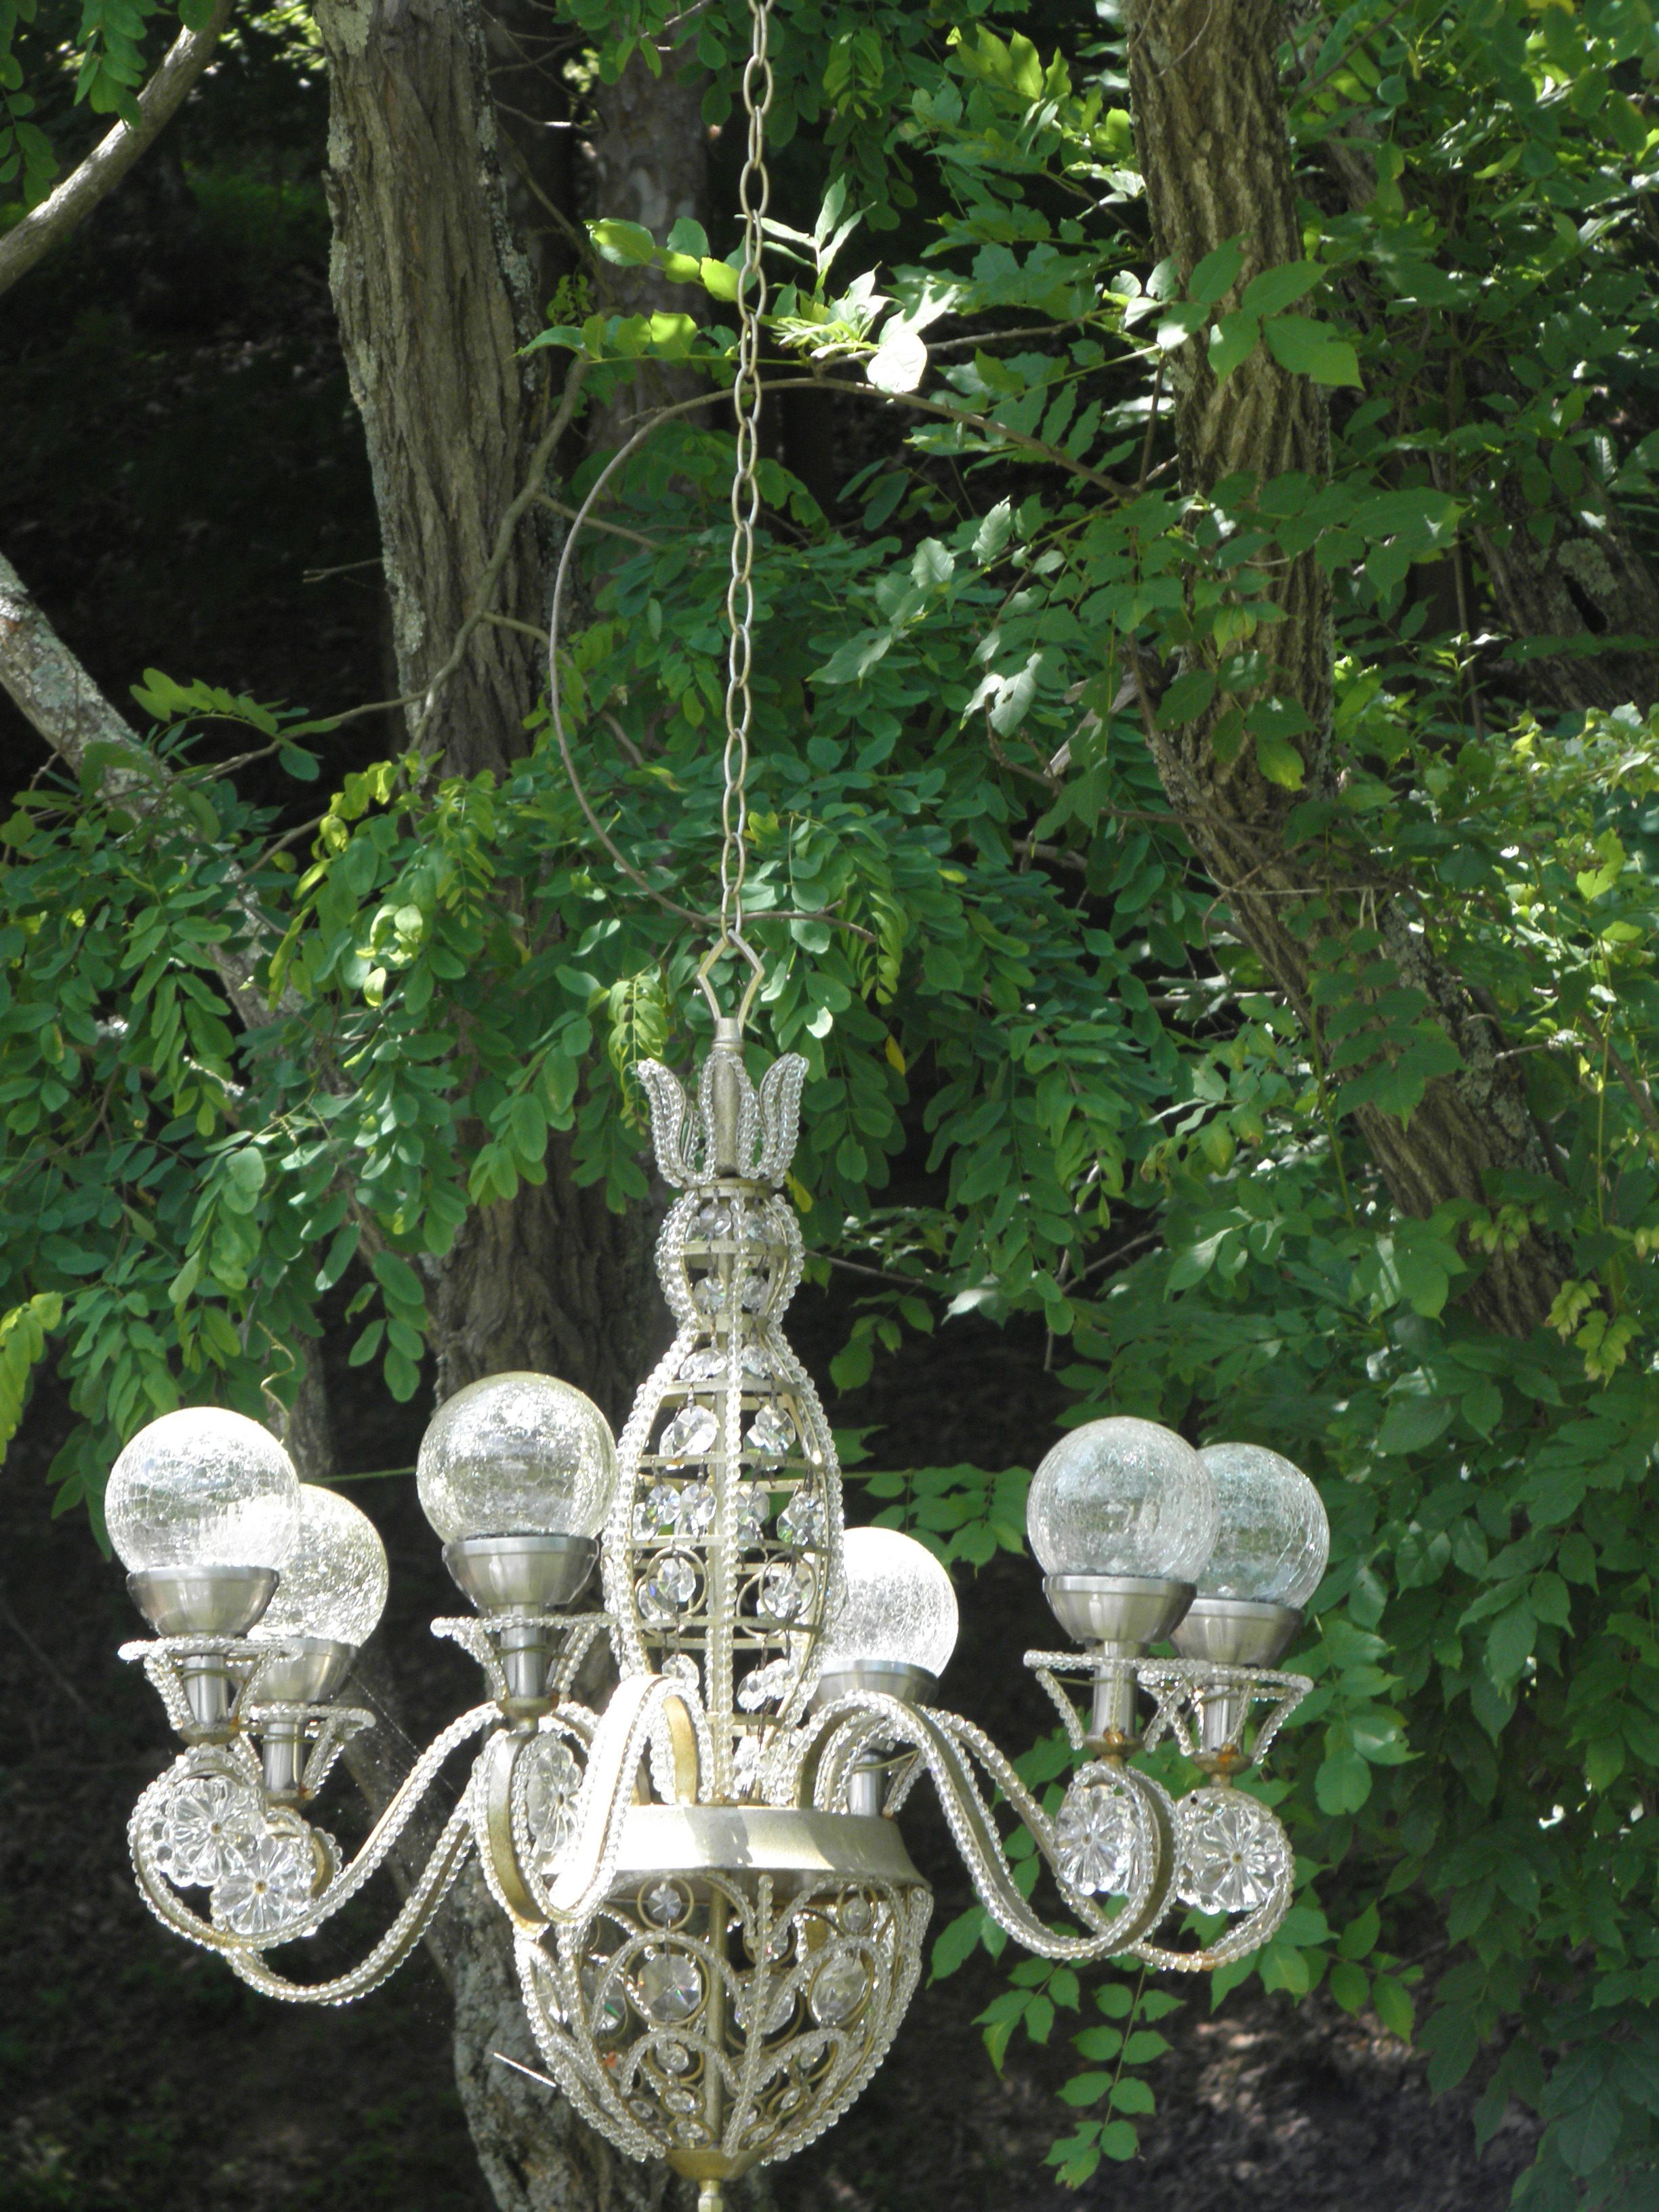 Incroyable Solar Powered Chandelier In My Garden. I Like The Round Balls Rather Than  The Regular Kind.